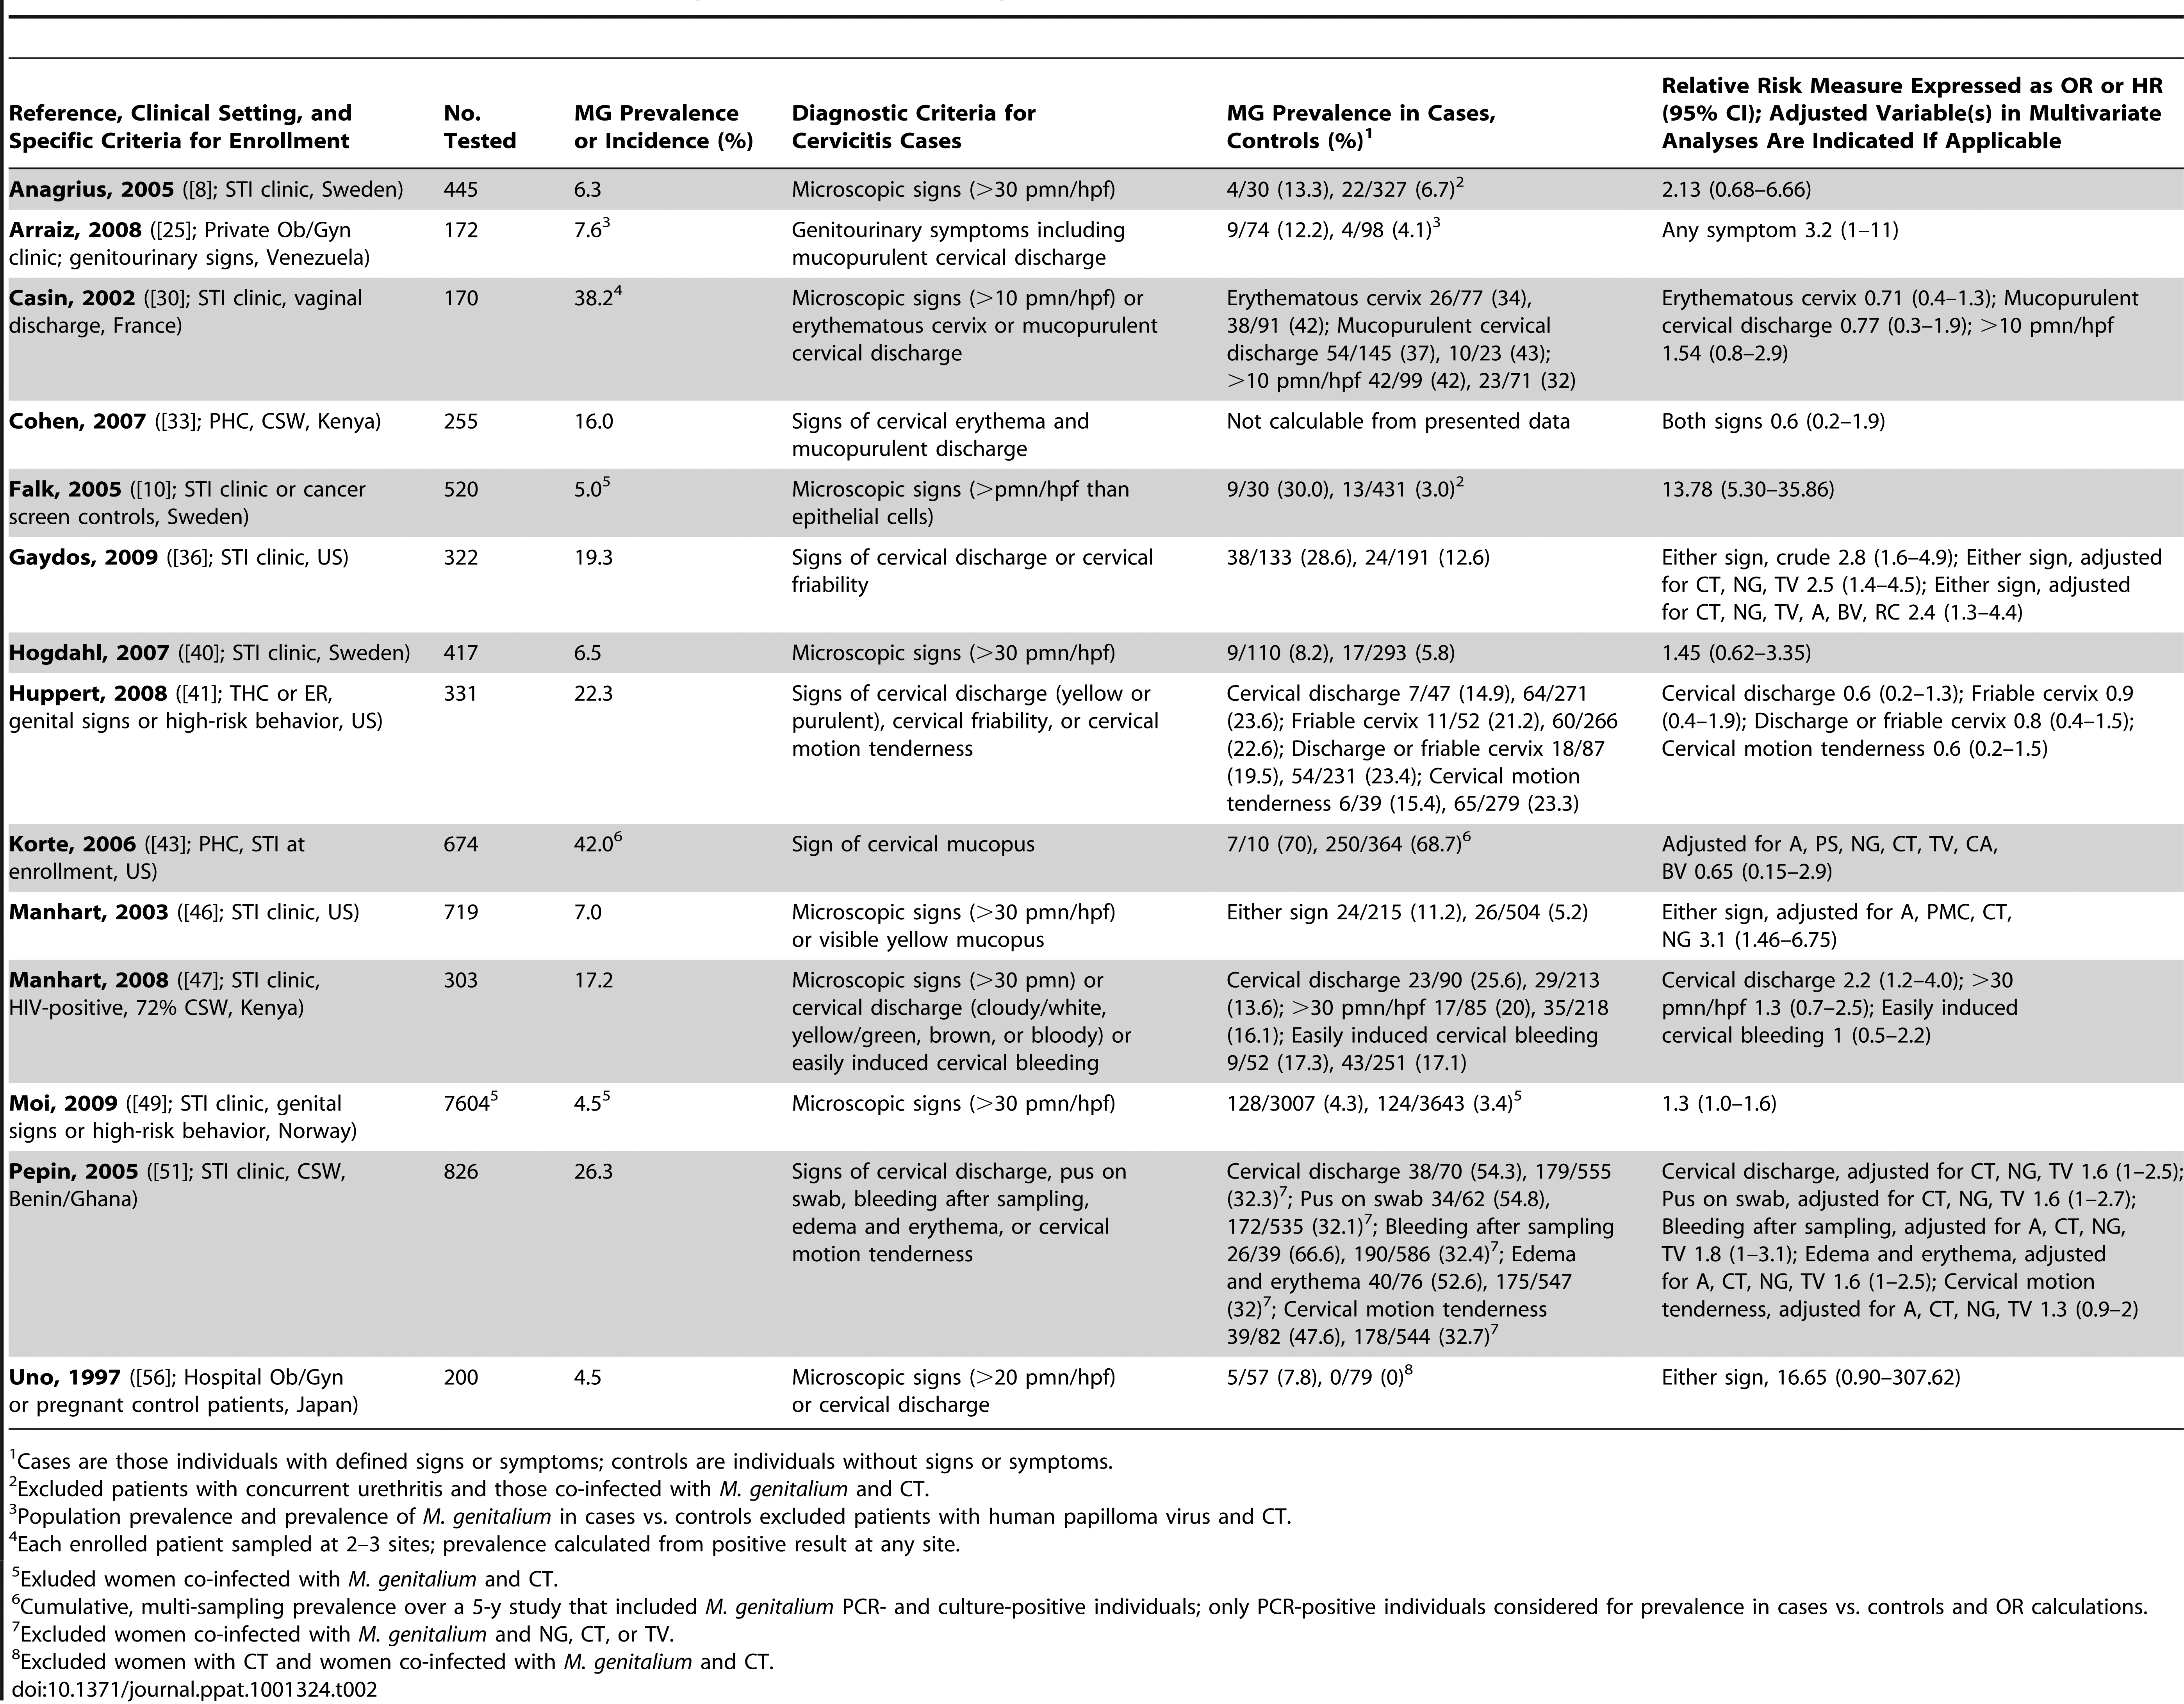 Characteristics of published studies evaluating the associations of <i>M. genitalium</i> with cervicitis.